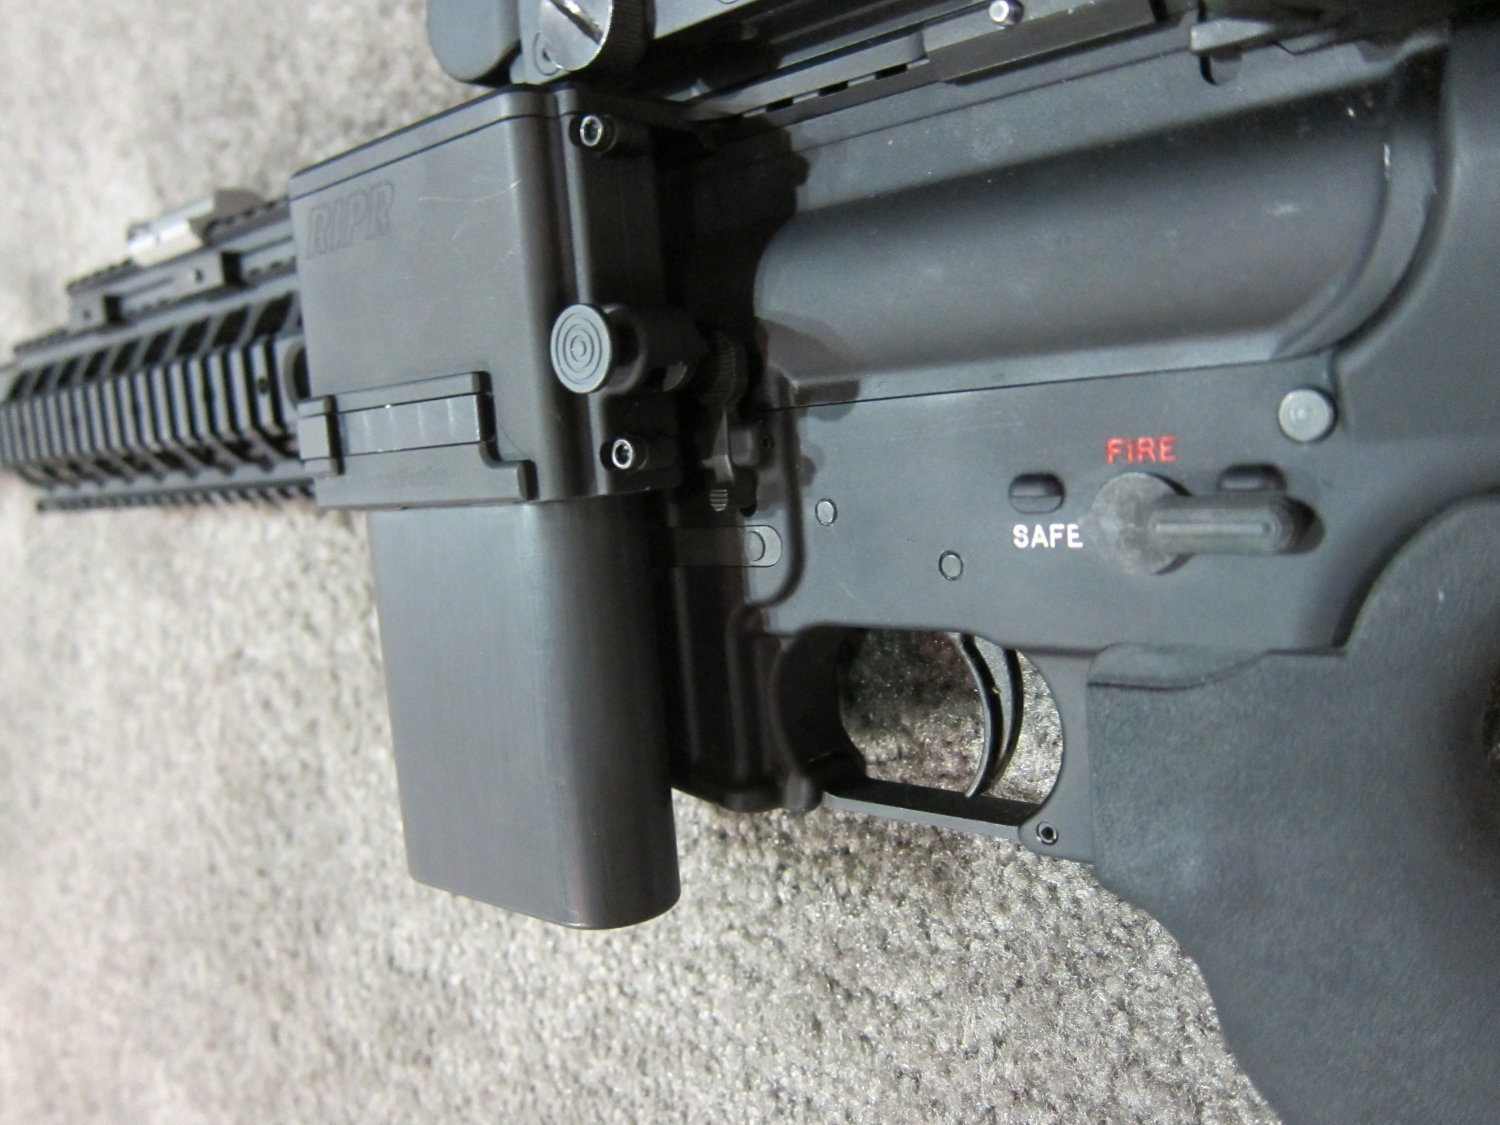 Reset RIPR Rifle Integrated Power Rail 6 <!  :en  >Reset RIPR (Rifle Integrated Power Rail): Central Power Source for Tactical AR Rifle/Carbine/SBR Accessories<!  :  >